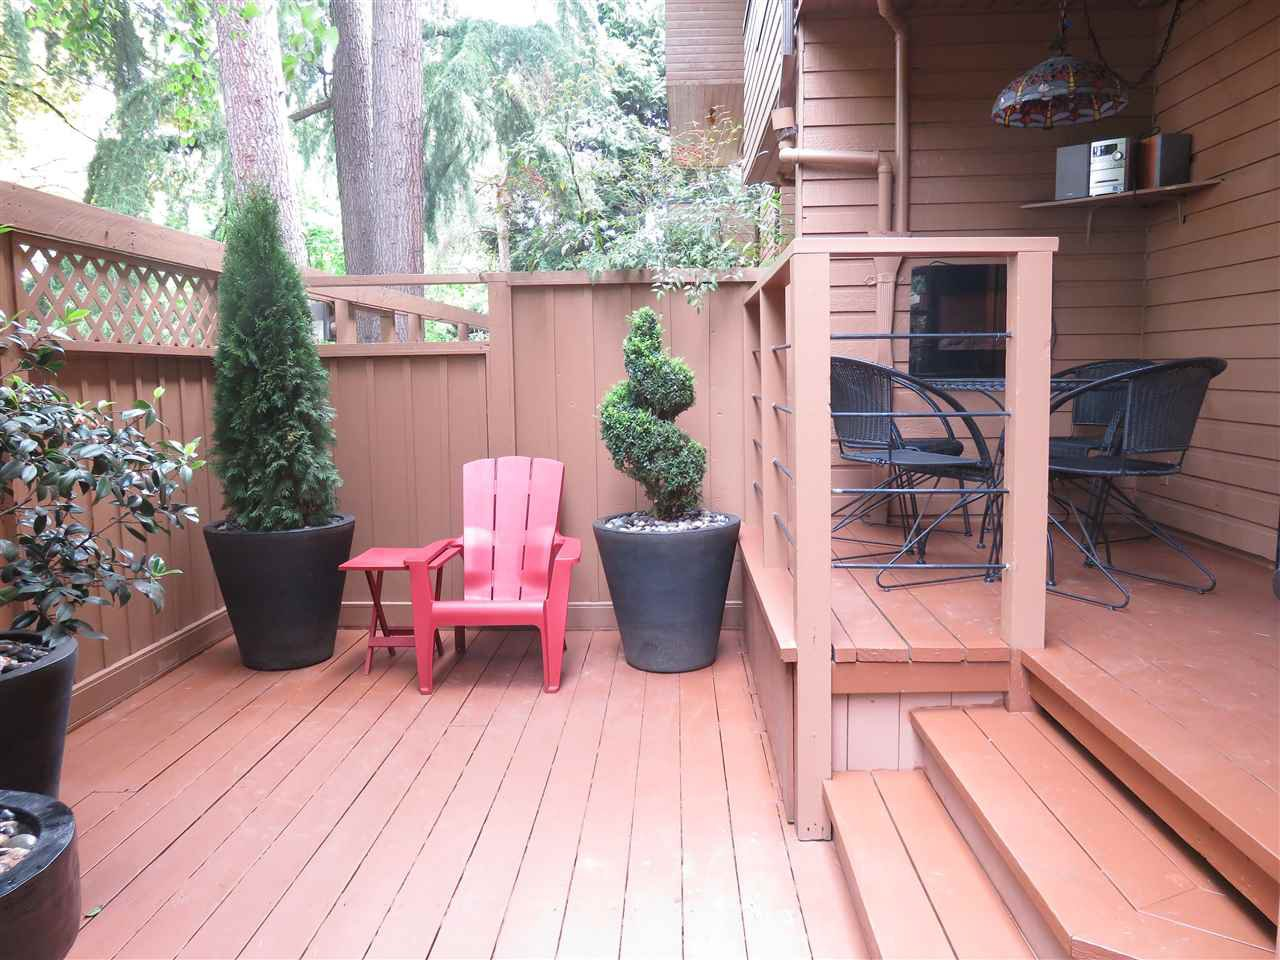 """Photo 12: Photos: 101 1930 W 3RD Avenue in Vancouver: Kitsilano Condo for sale in """"WESTVIEW"""" (Vancouver West)  : MLS®# R2169188"""